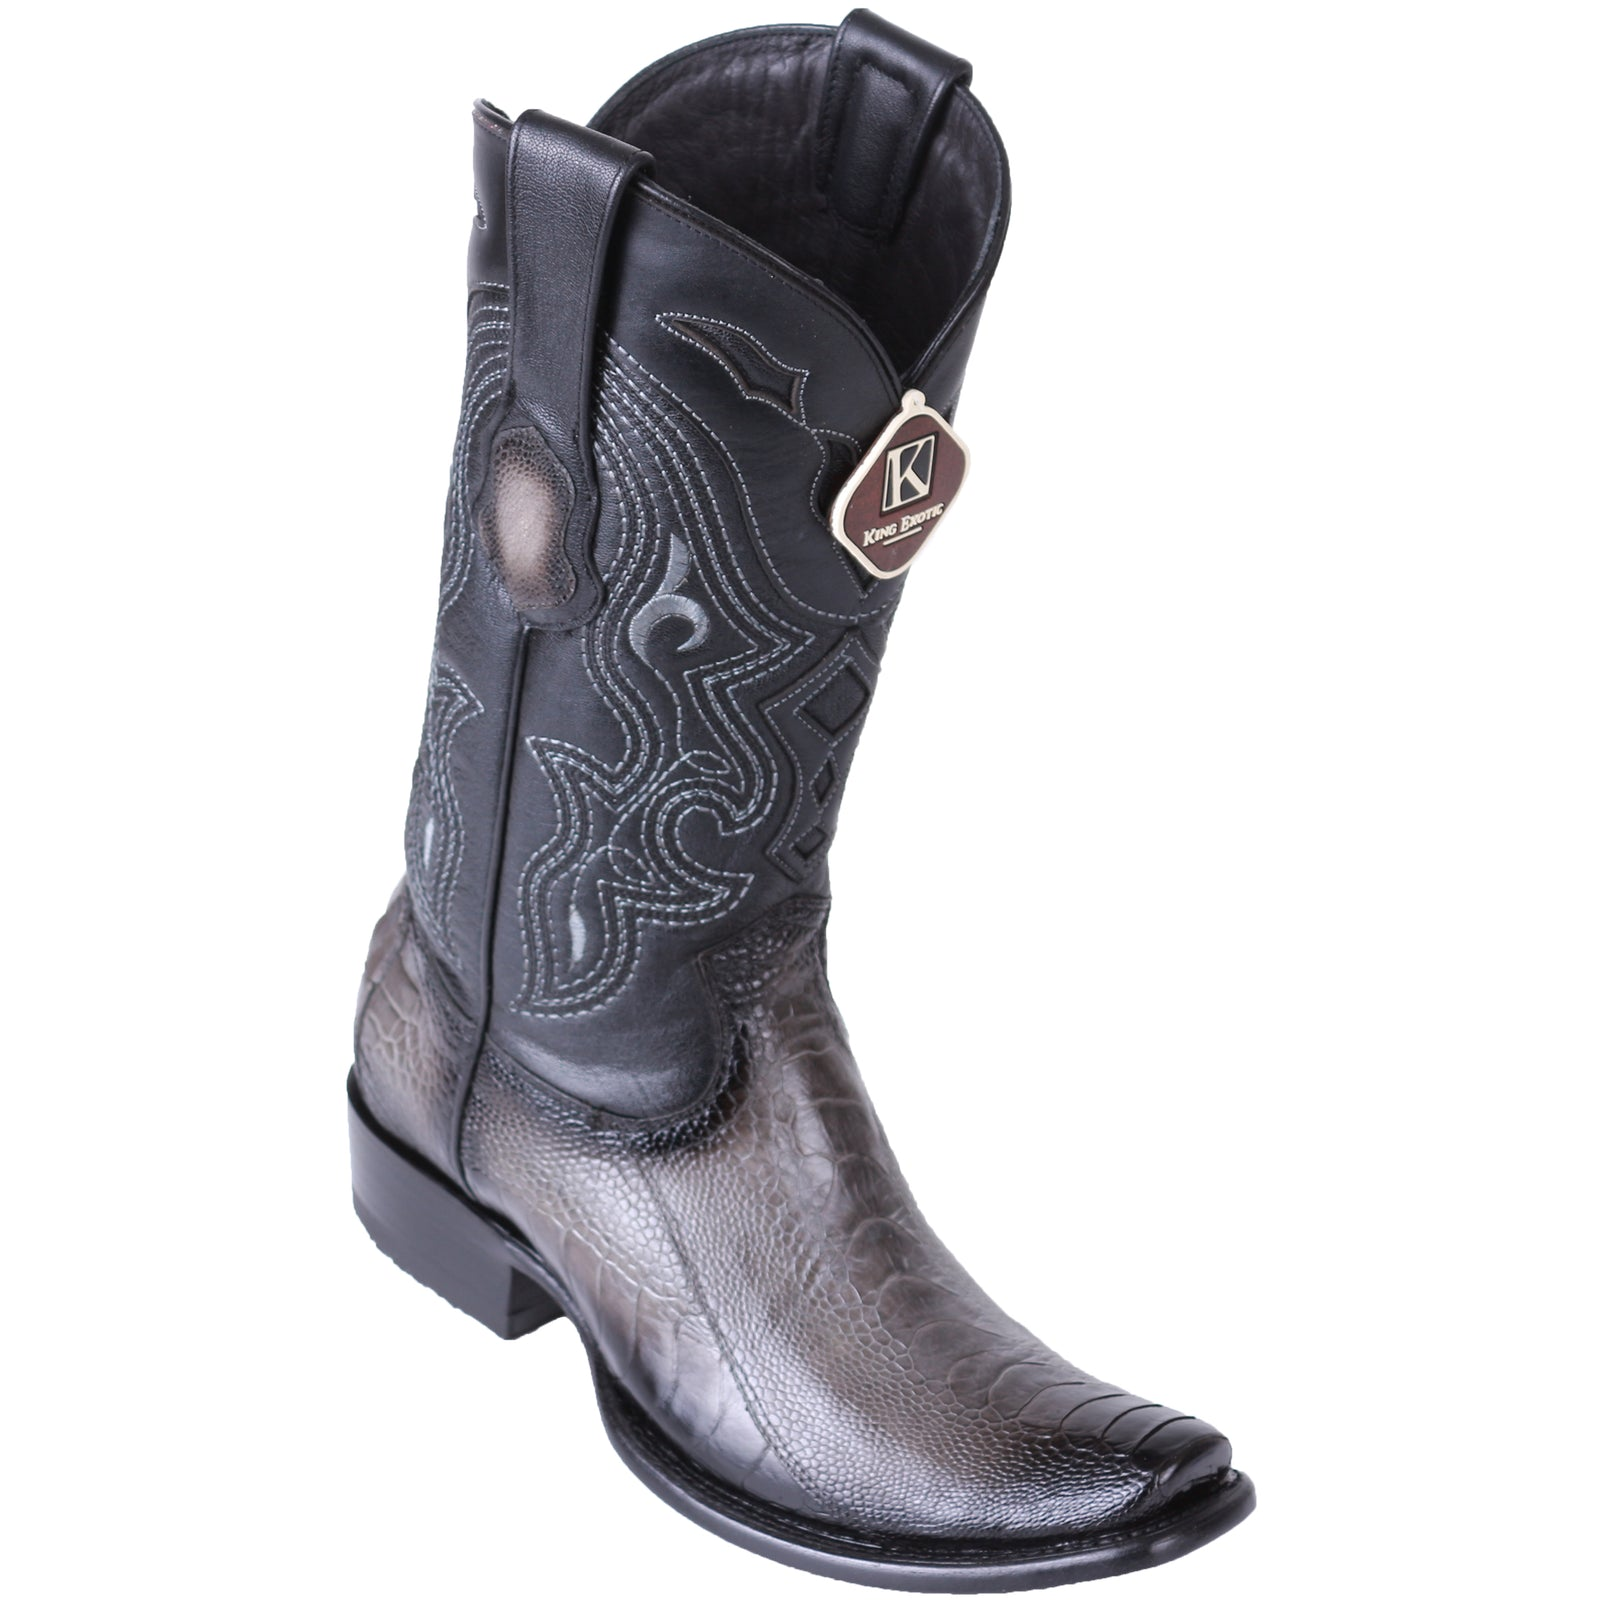 King Exotic Men's Ostrich Leg Faded Grey Cowboy Boots - H79 Dubai Toe